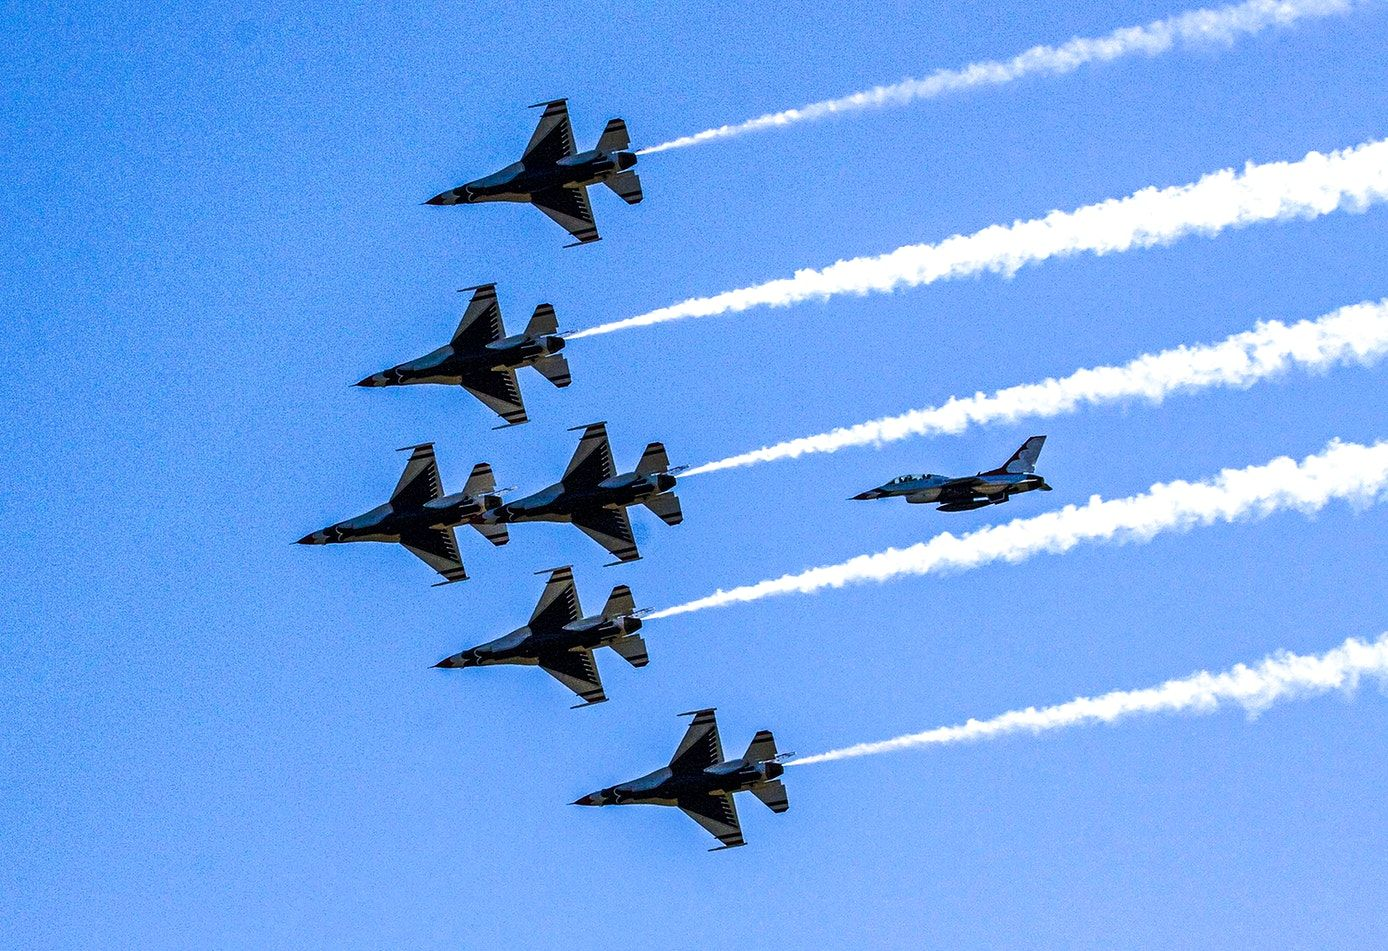 The U S Air Force Thunderbirds Show Their Precision Formation As They Fly Over Nasa S Kennedy Space Center In Florida Ori Kennedy Space Center Air Force Nasa